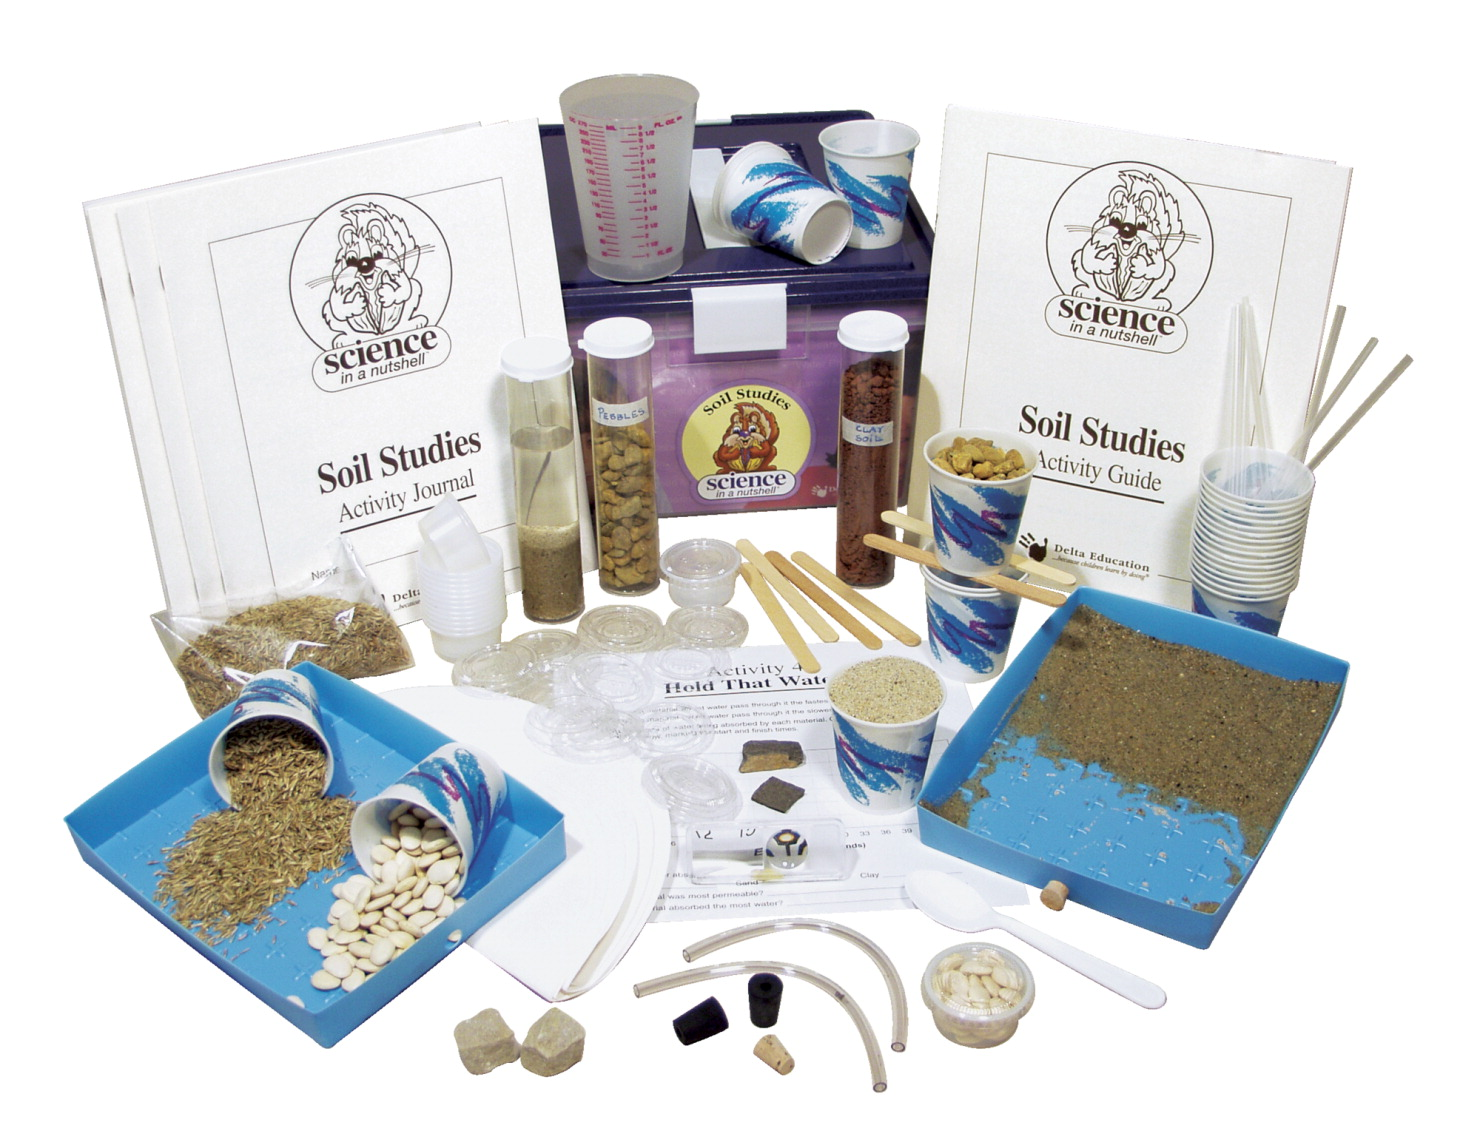 Delta Science in a Nutshell Soil Studies Kit